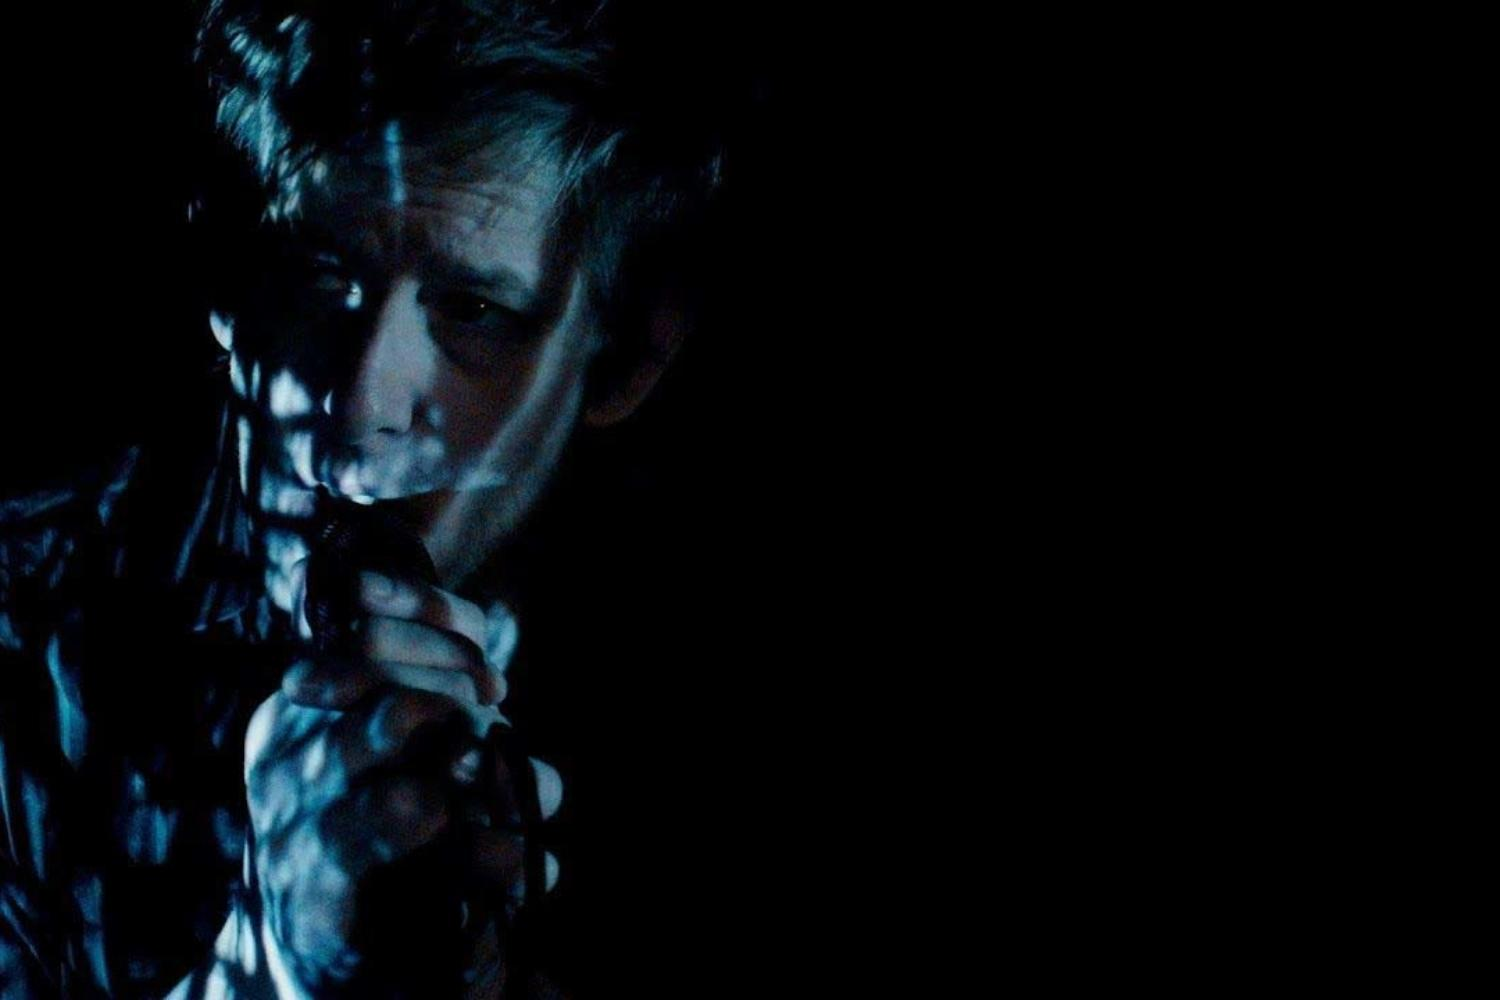 Spoon hide in the shadows in their 'I Ain't The One' video